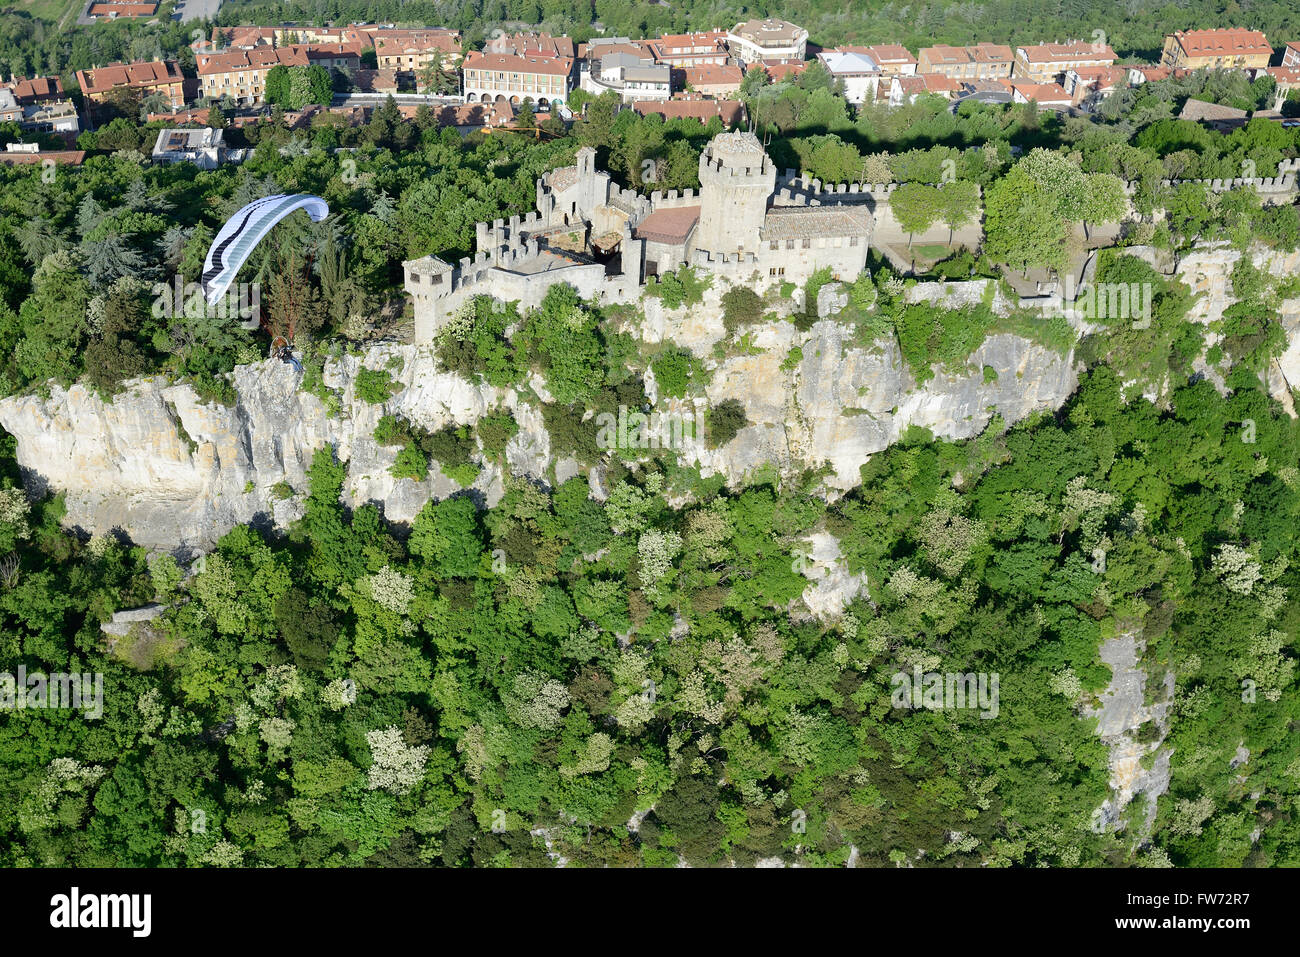 PARAMOTOR FLYING OVER CESTA CASTLE (aerial view). Republic of San Marino. - Stock Image